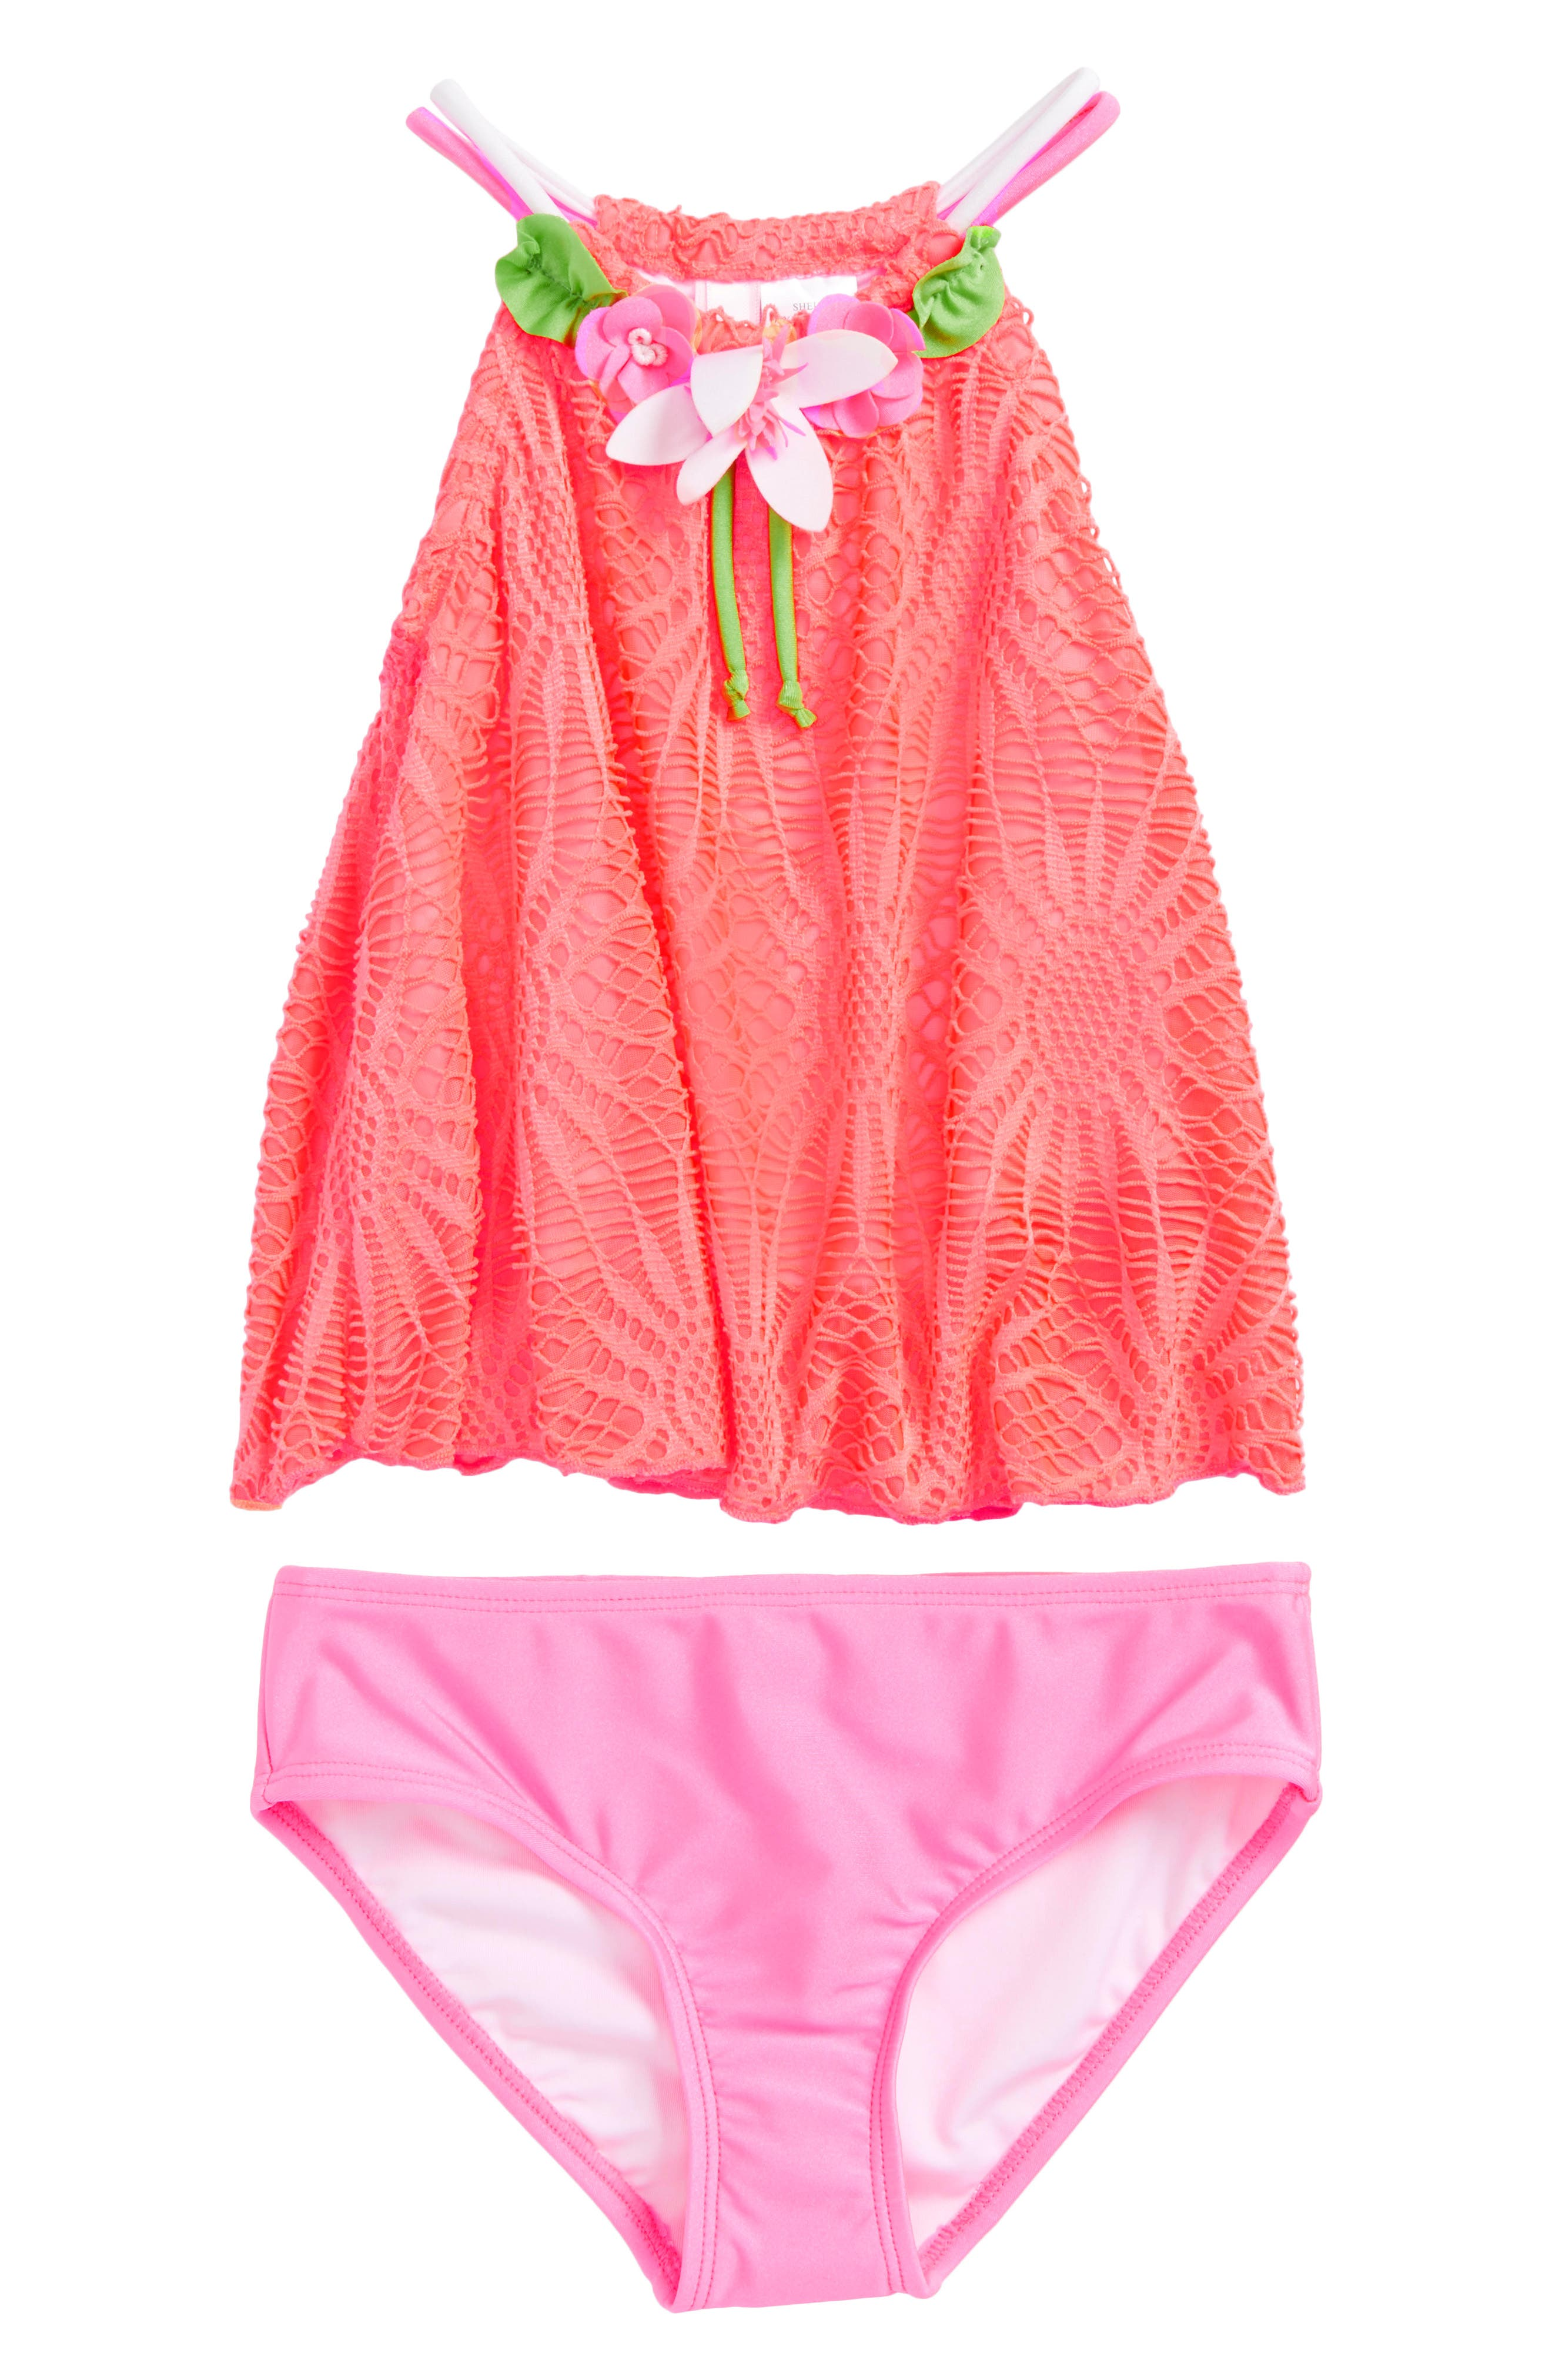 Crochet Tankini Two-Piece Swimsuit,                             Main thumbnail 1, color,                             Coral Pink